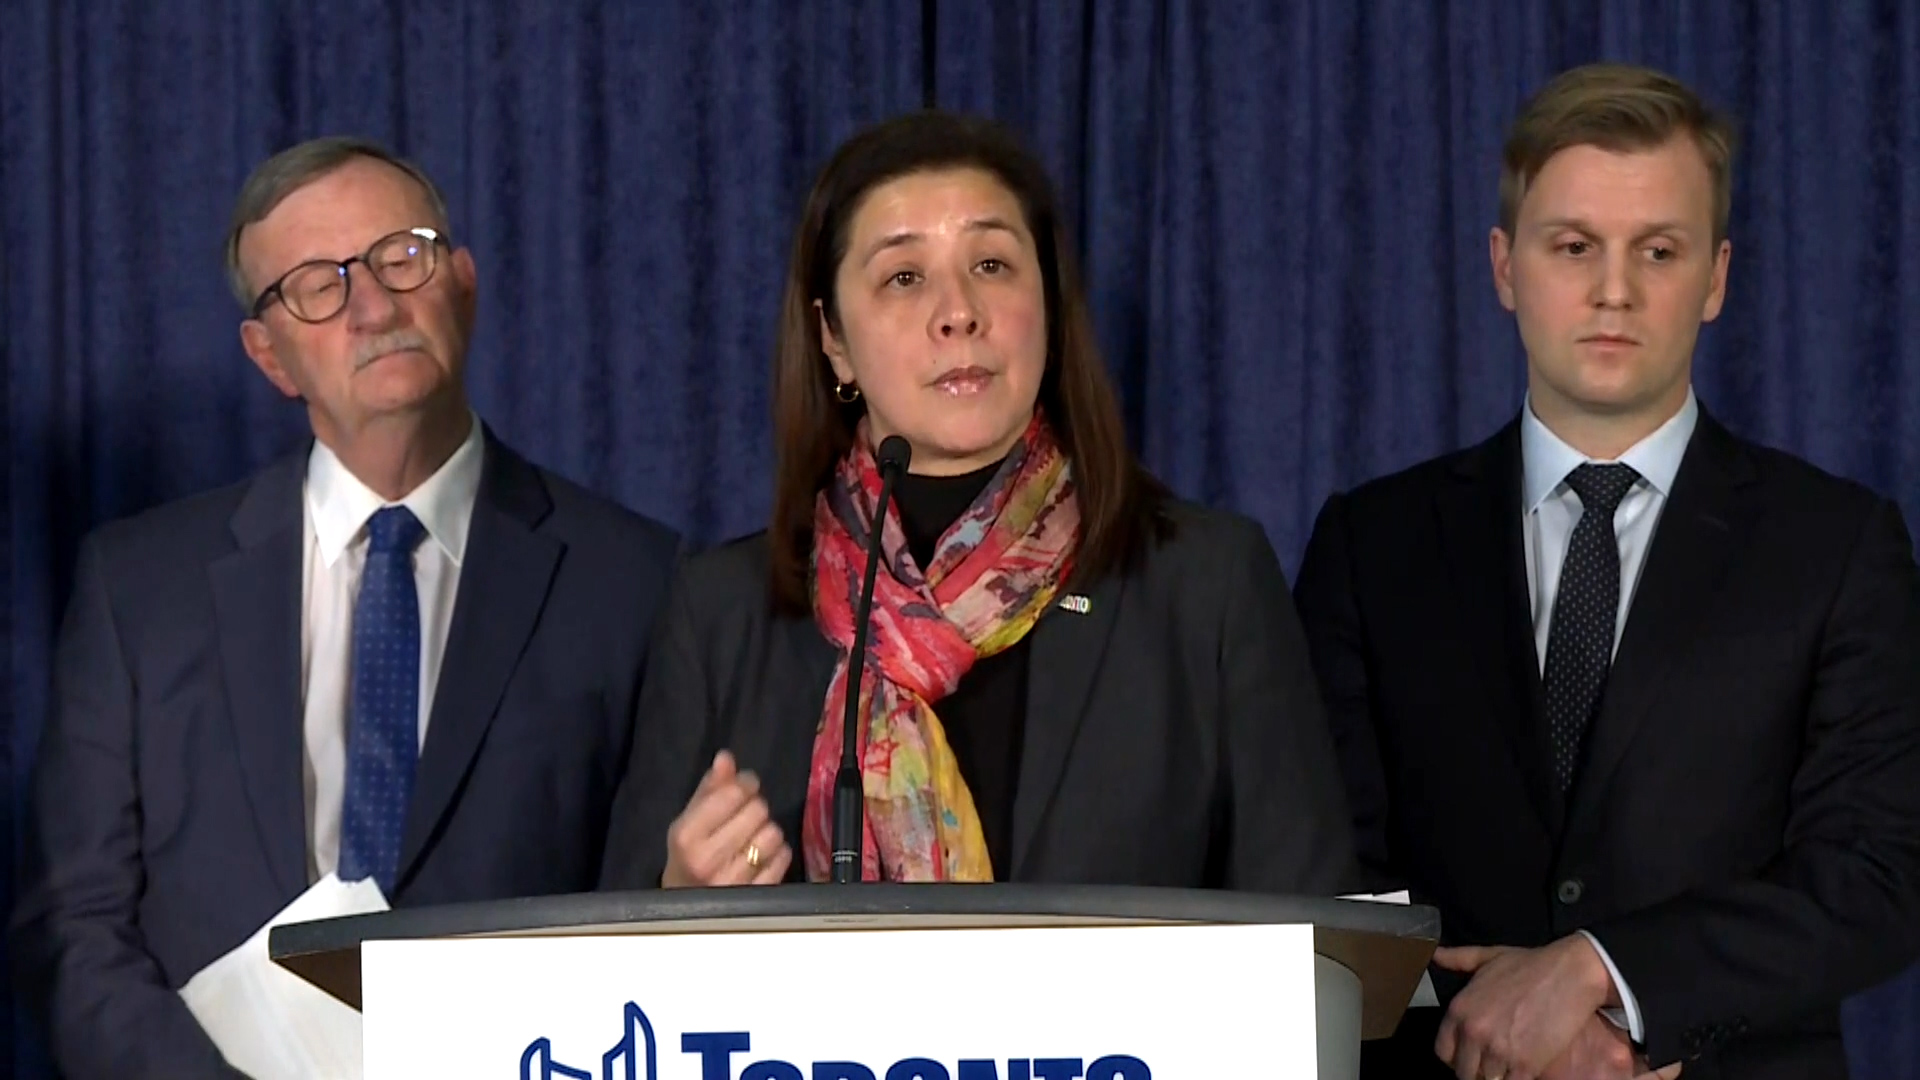 Coronavirus outbreak: No confirmed cases in Toronto, public health officer says